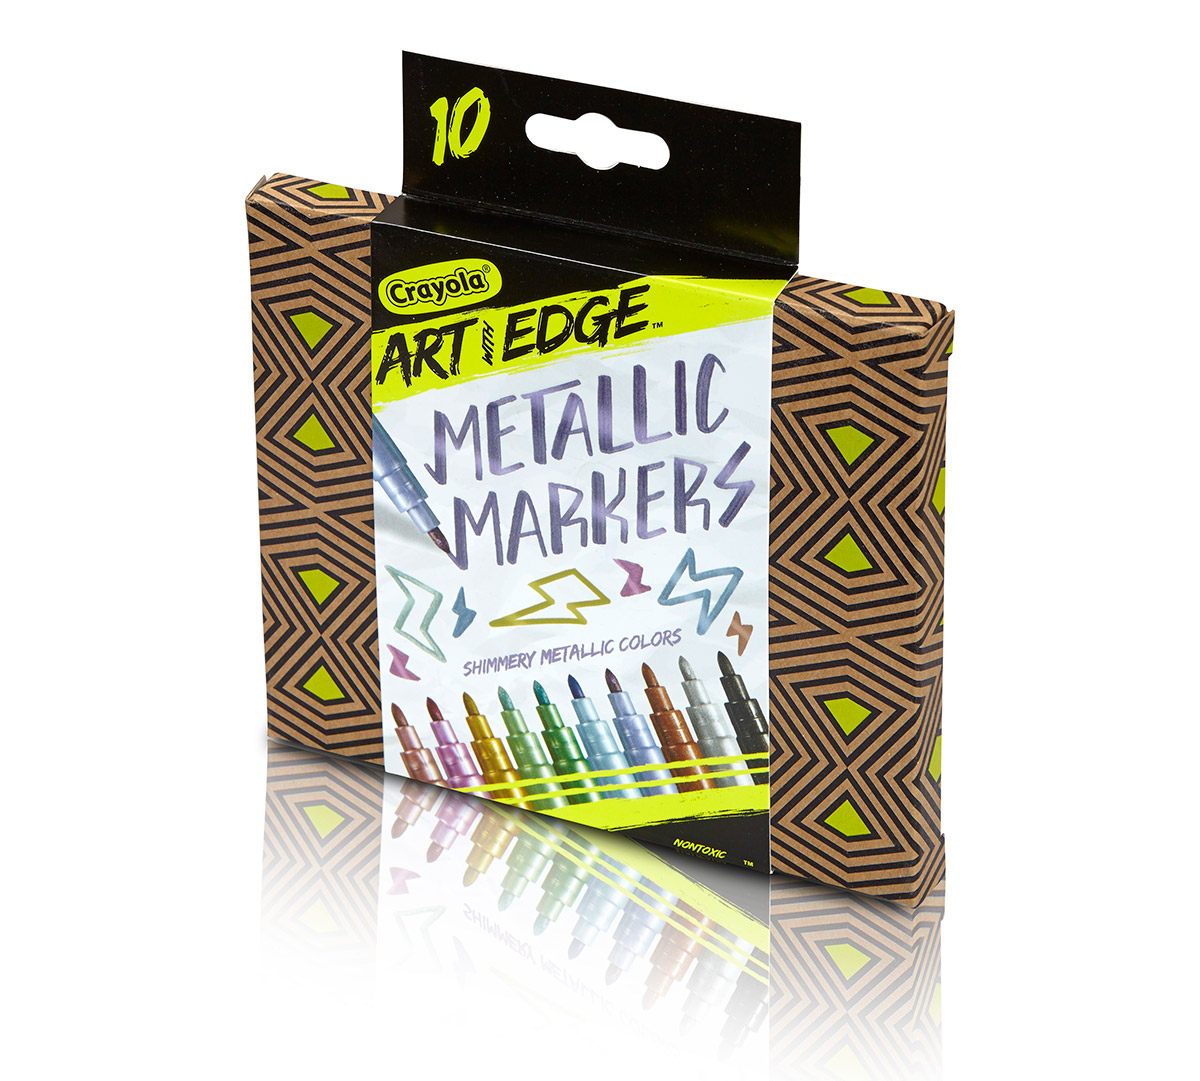 Crayola Art With Edge Metallic Markers Art Tools 10 Count Special Effects Coloring For